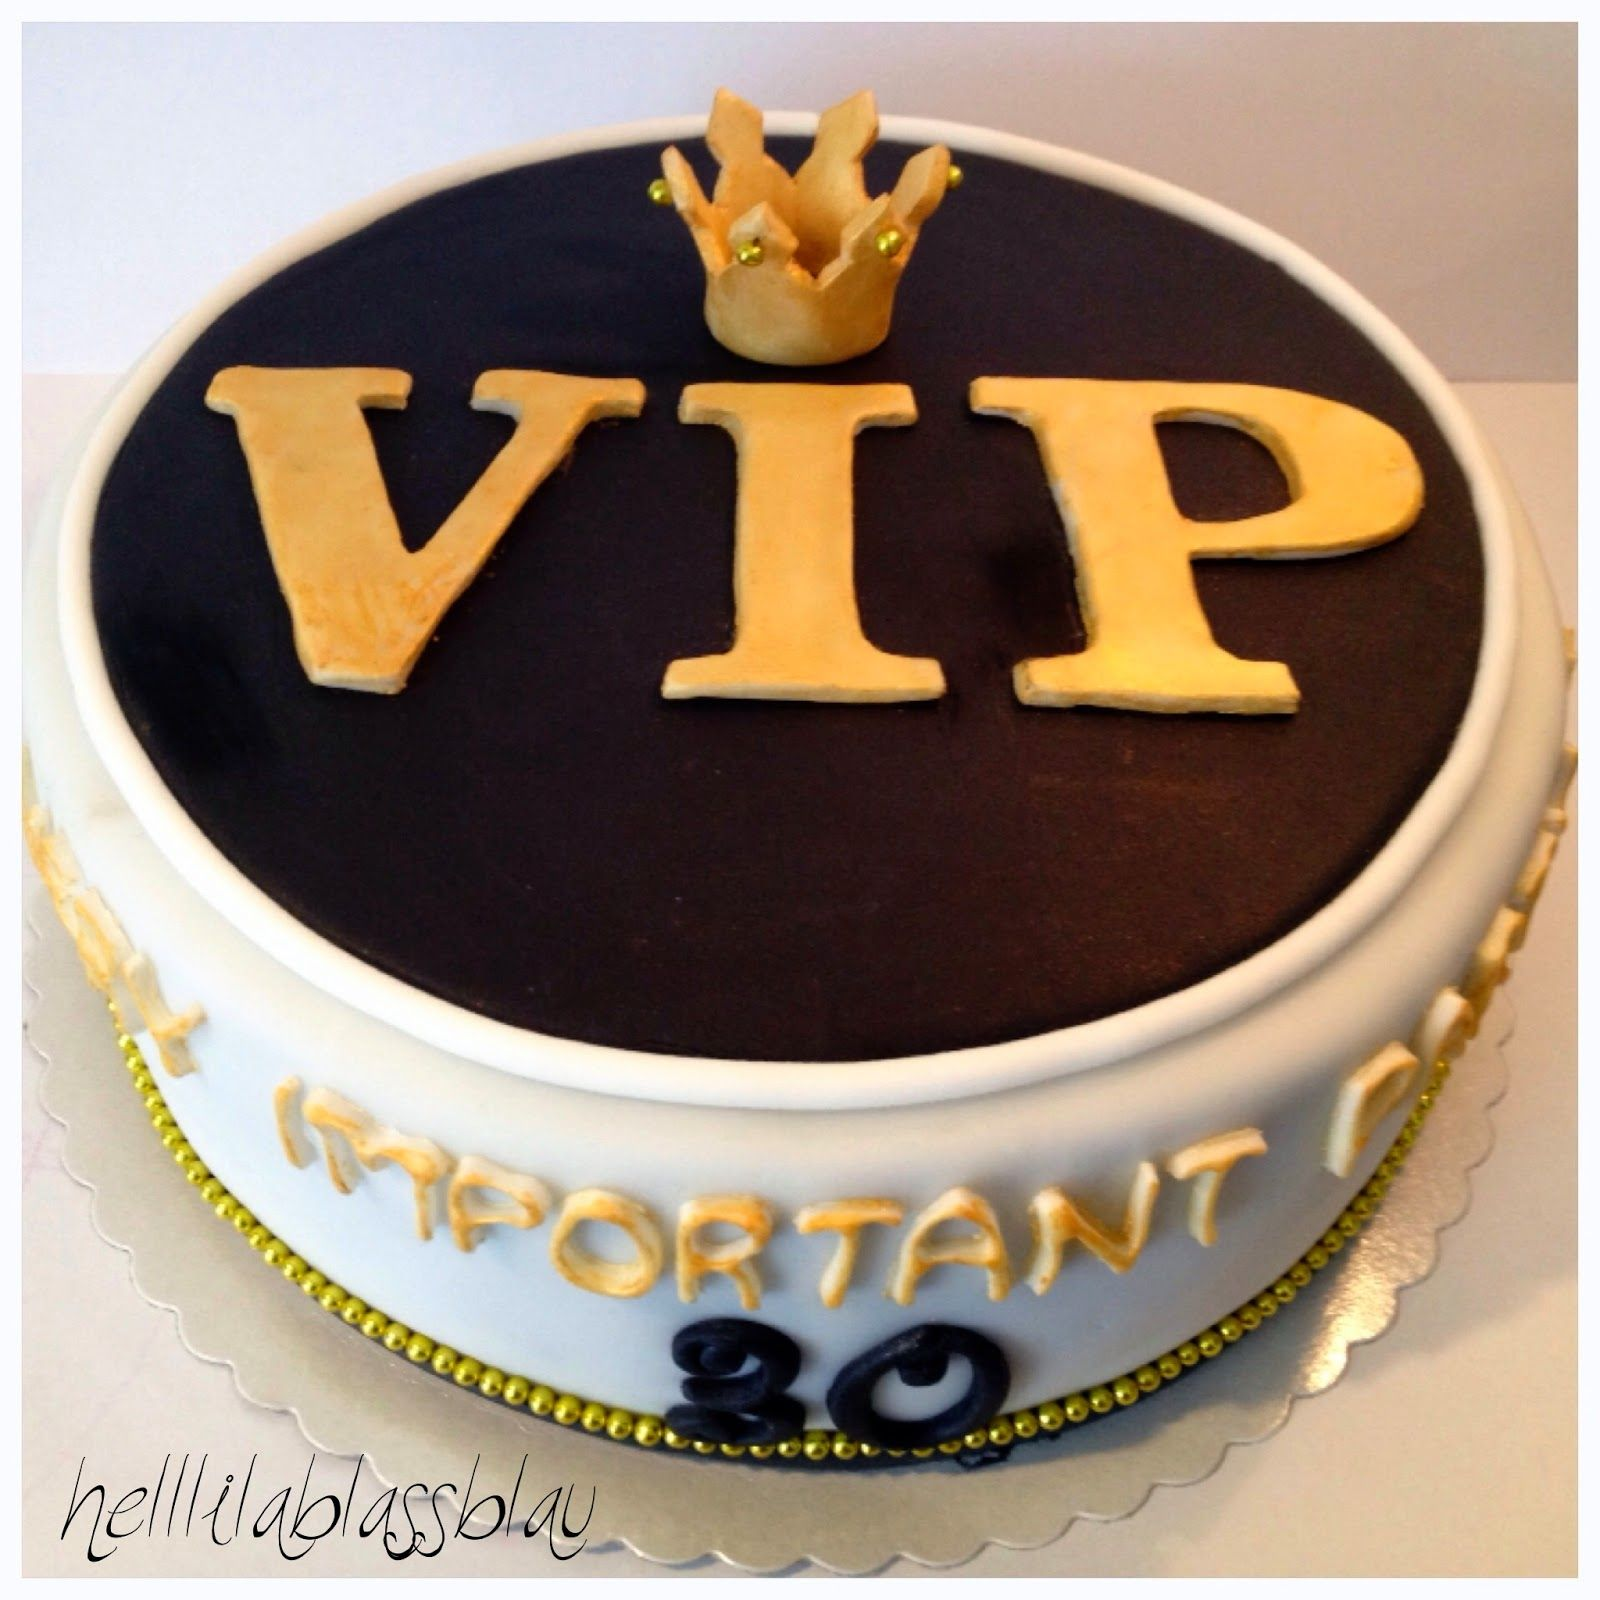 vip torte zum 30 geburtstag very important party motivtorten pinterest vip 30th and cake. Black Bedroom Furniture Sets. Home Design Ideas